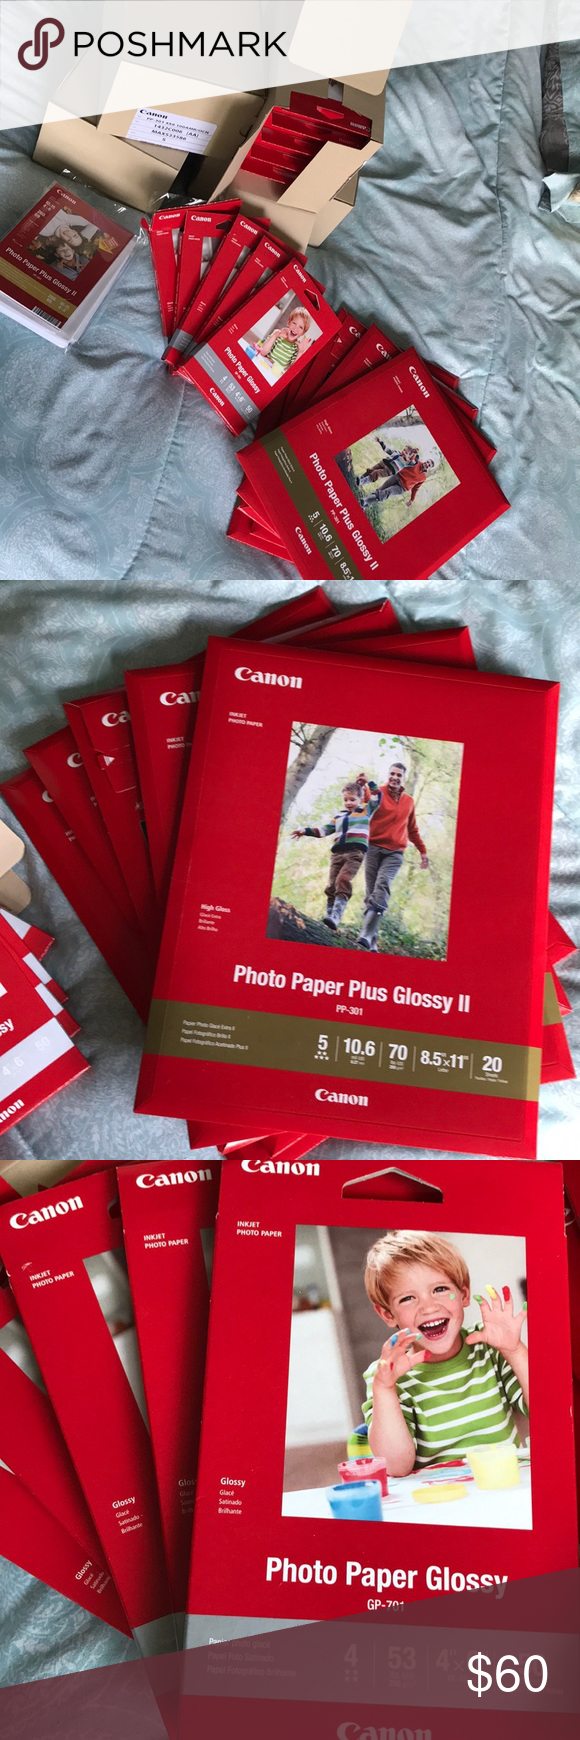 Canon Camera Glossy Printing Photo Paper Bundle Tons Of Canon Brand